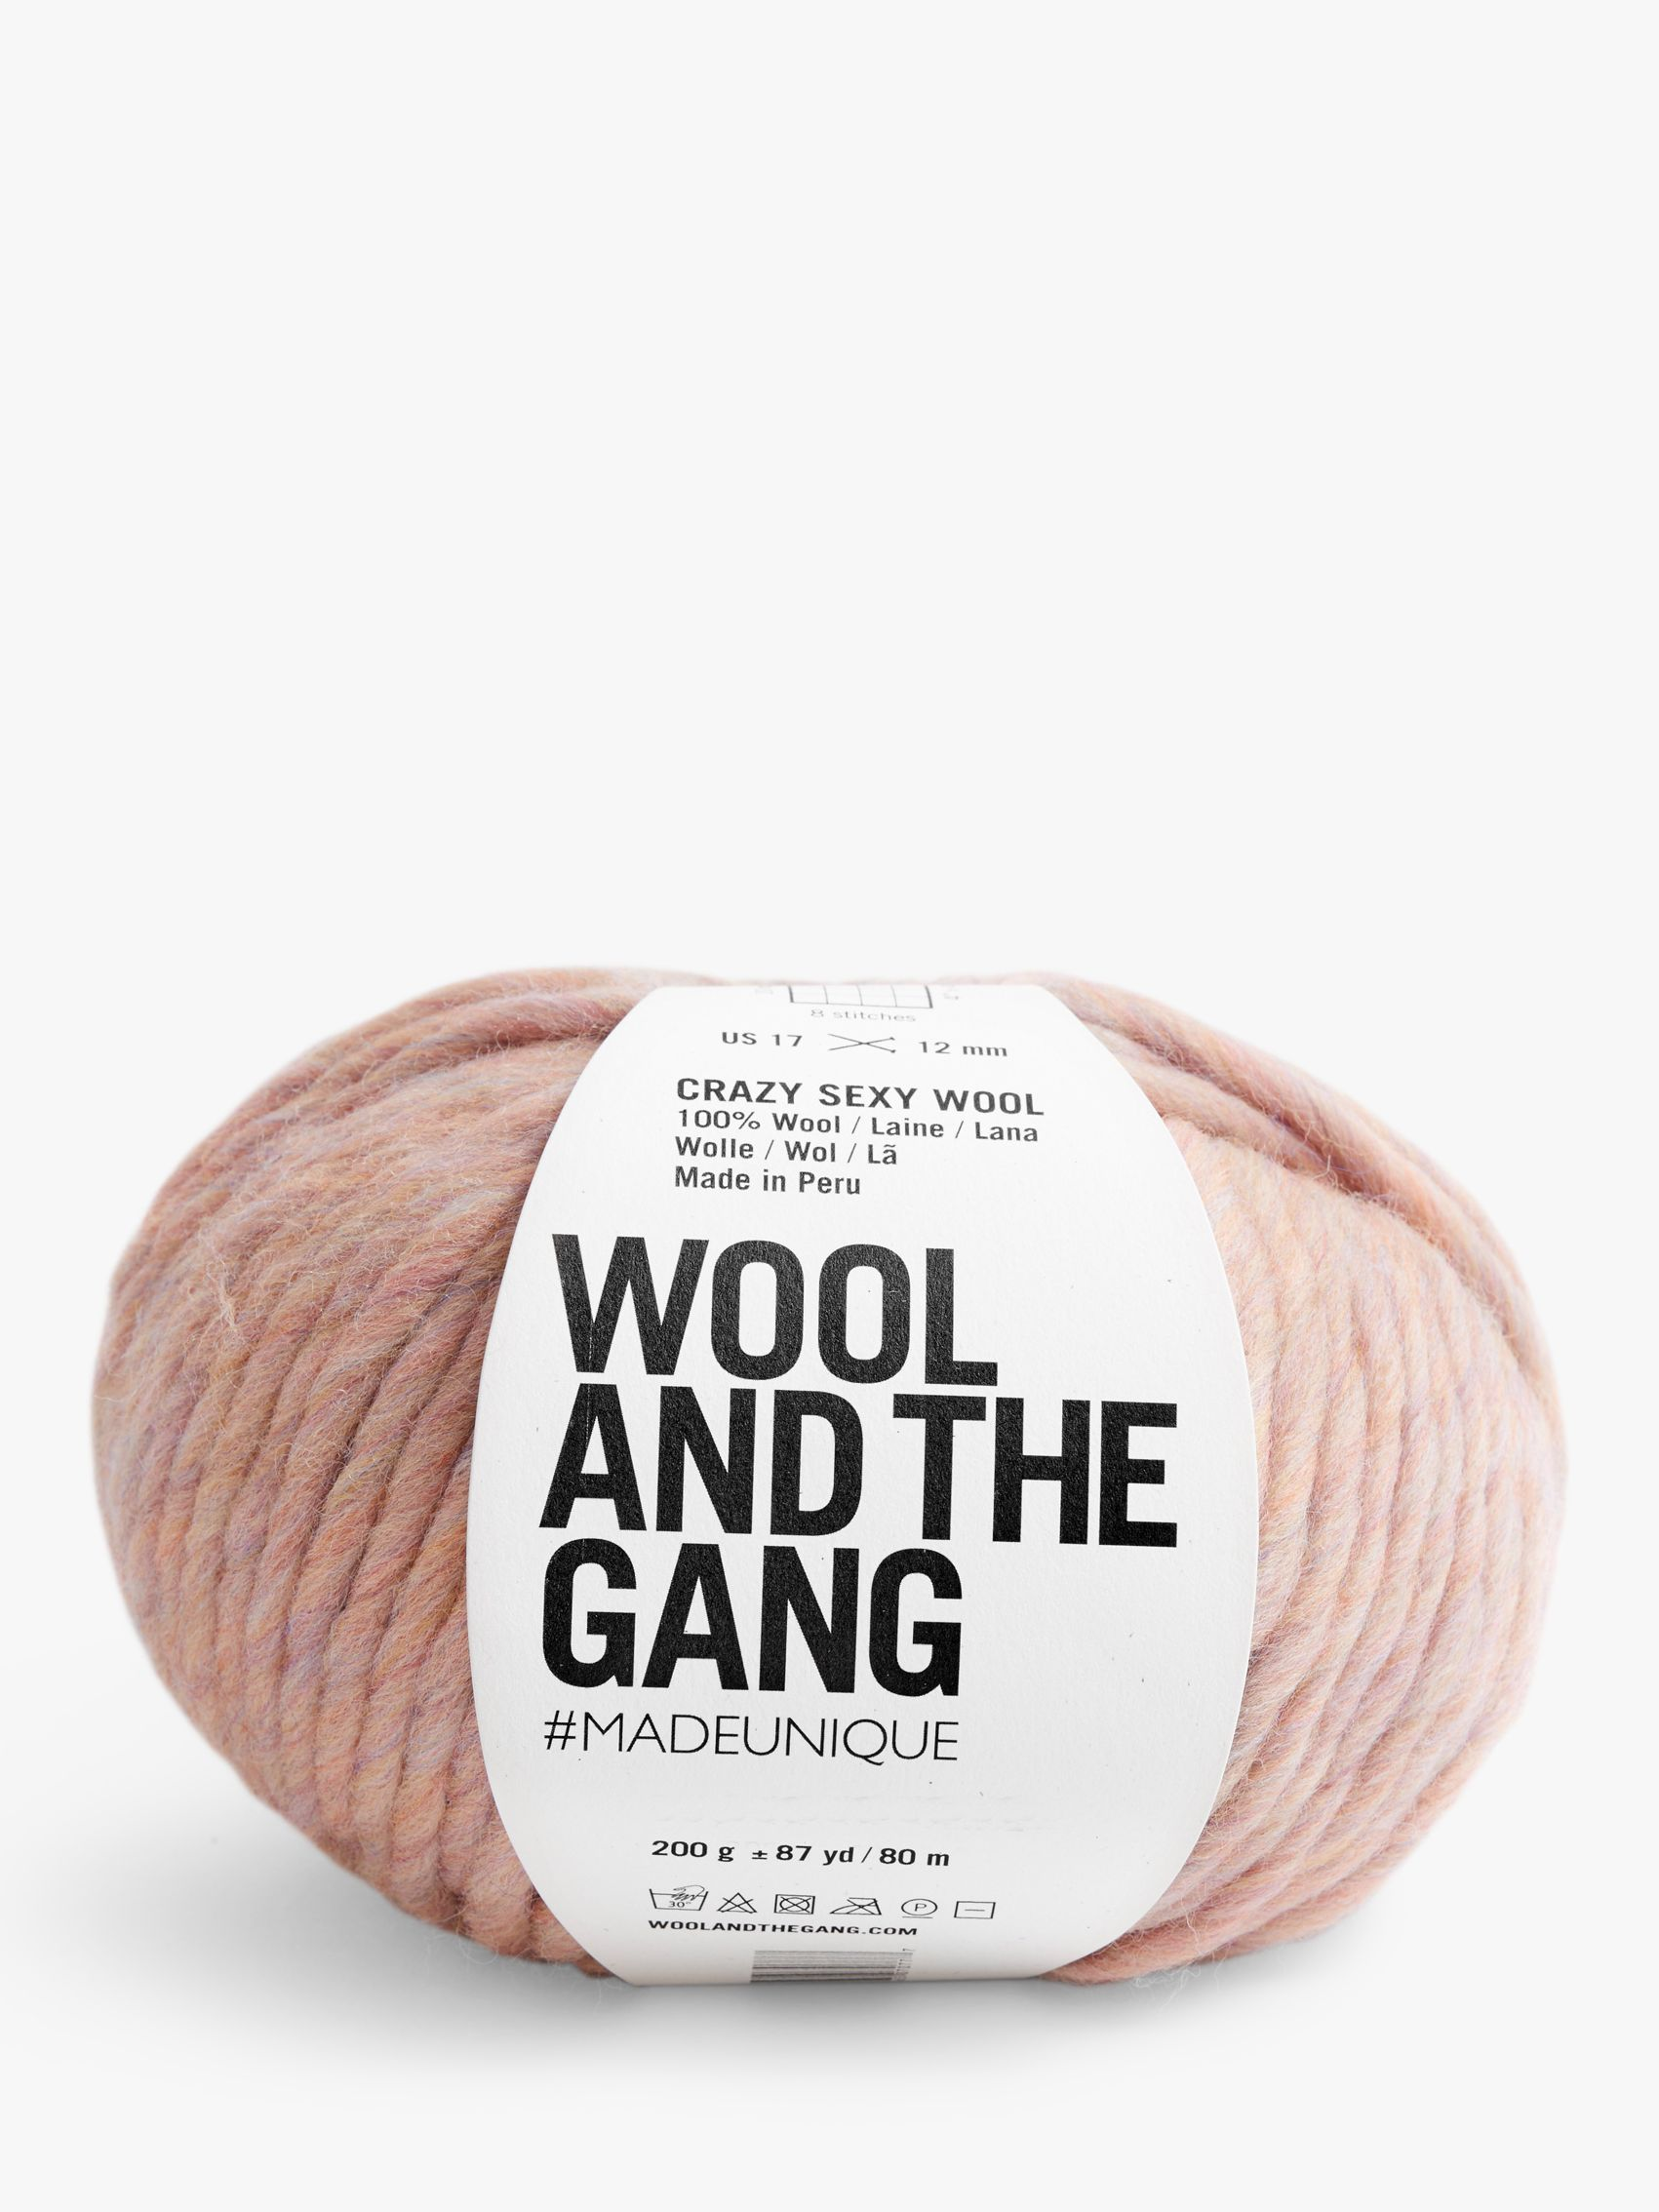 Wool and the Gang Wool And The Gang Crazy Sexy Wool Yarn, 200g